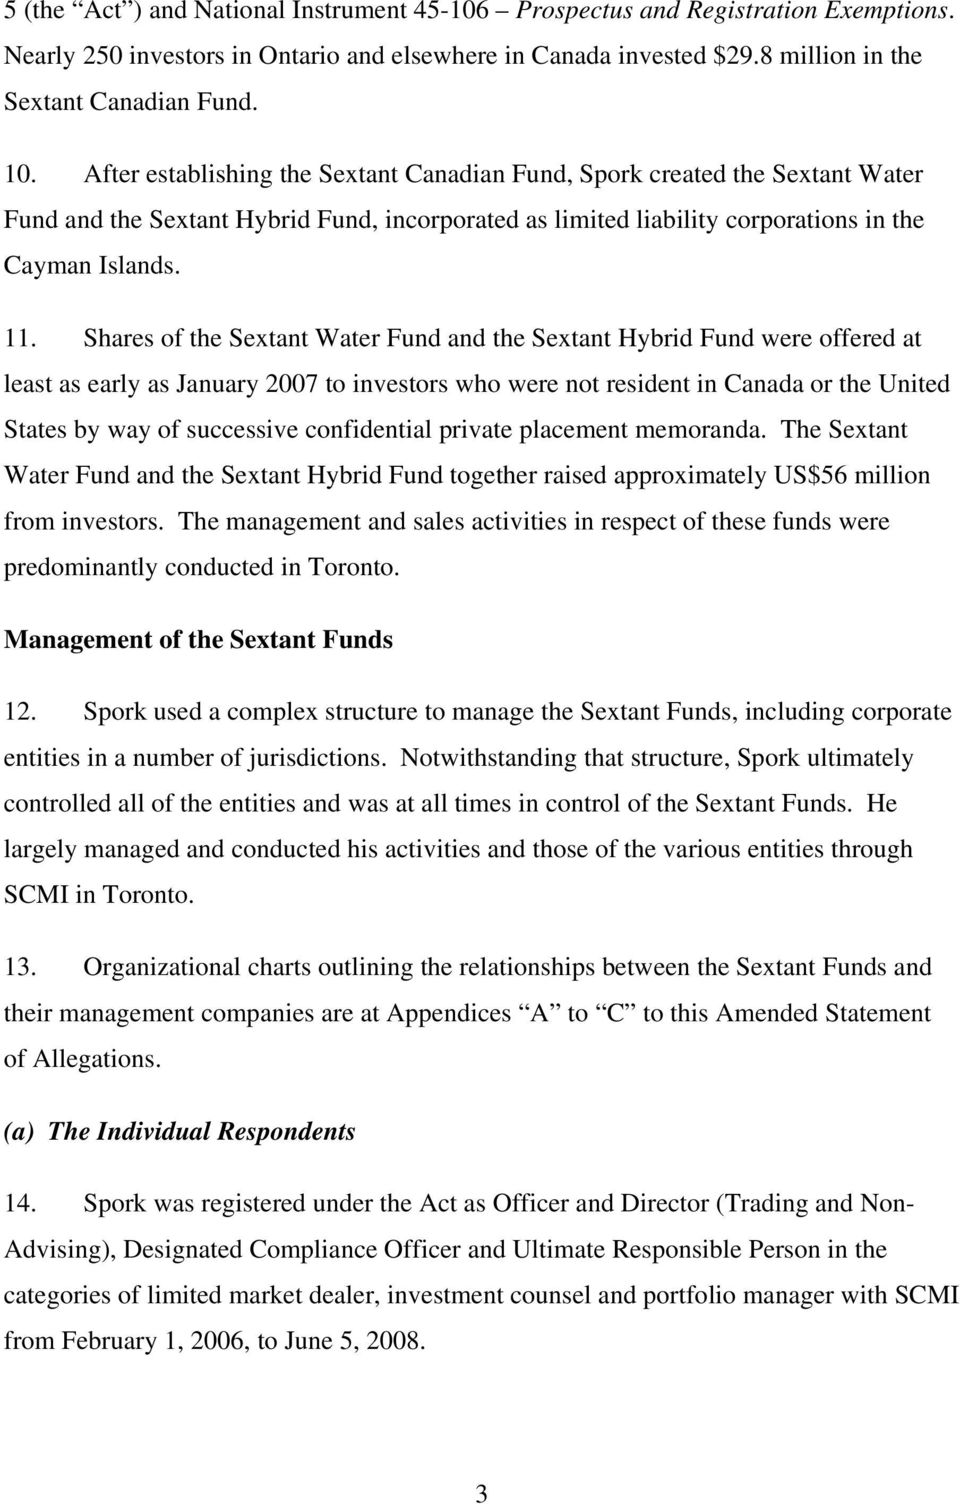 Shares of the Sextant Water Fund and the Sextant Hybrid Fund were offered at least as early as January 2007 to investors who were not resident in Canada or the United States by way of successive